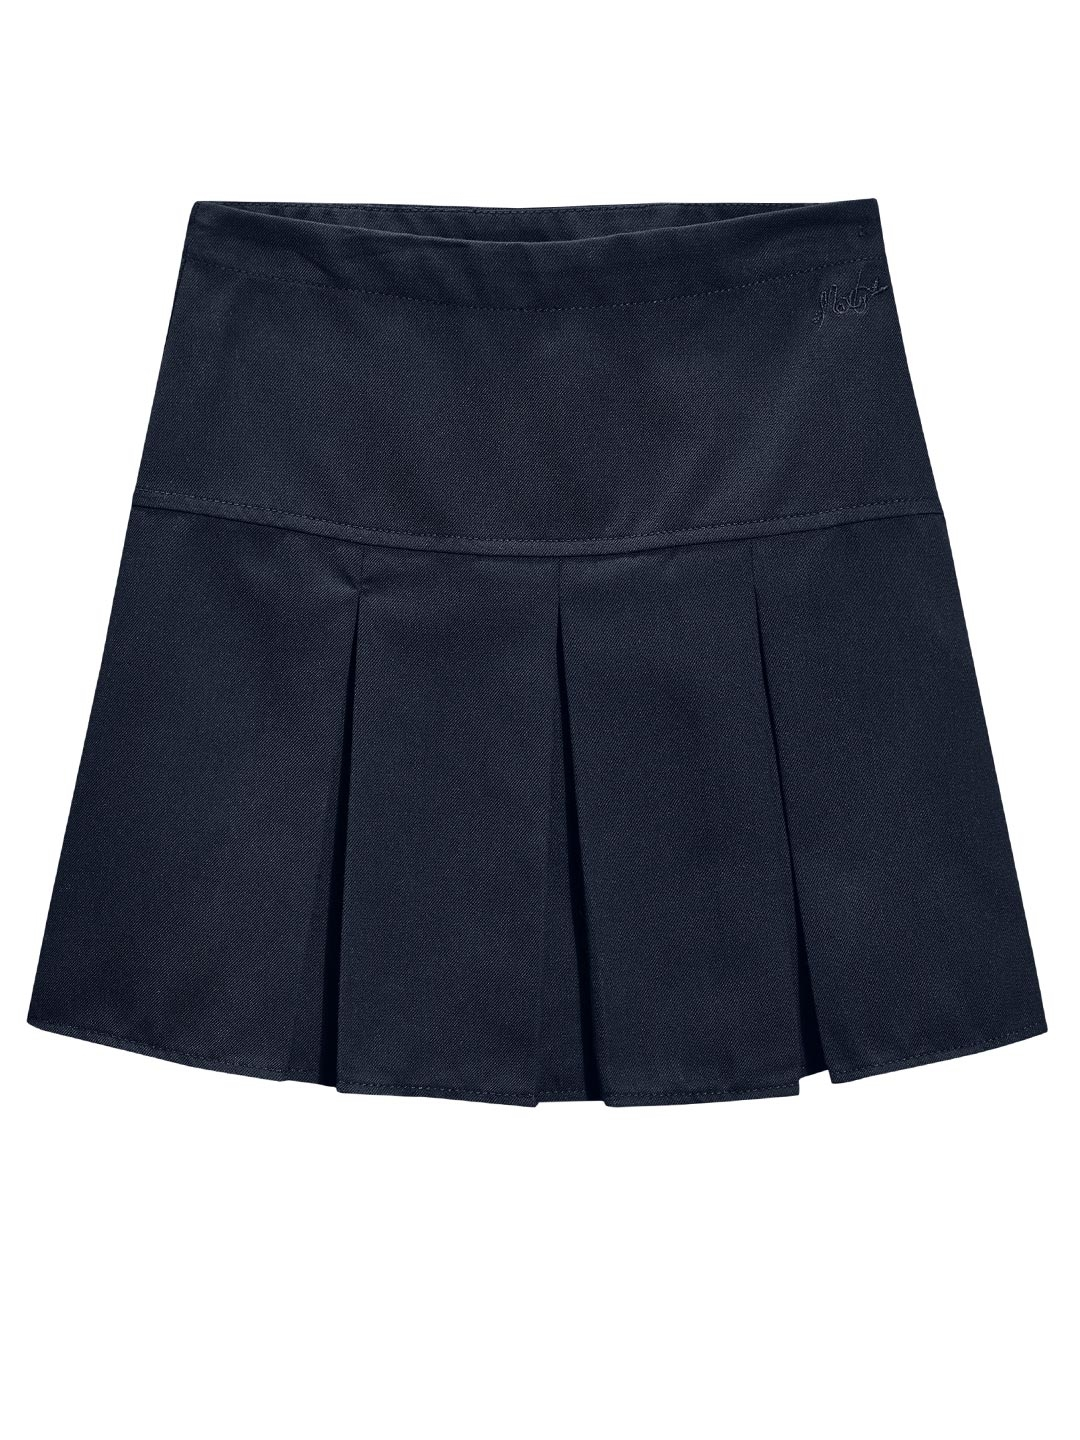 Buy Next Girls Navy Pleated A Line Skirt - Skirts for Girls | Myntra